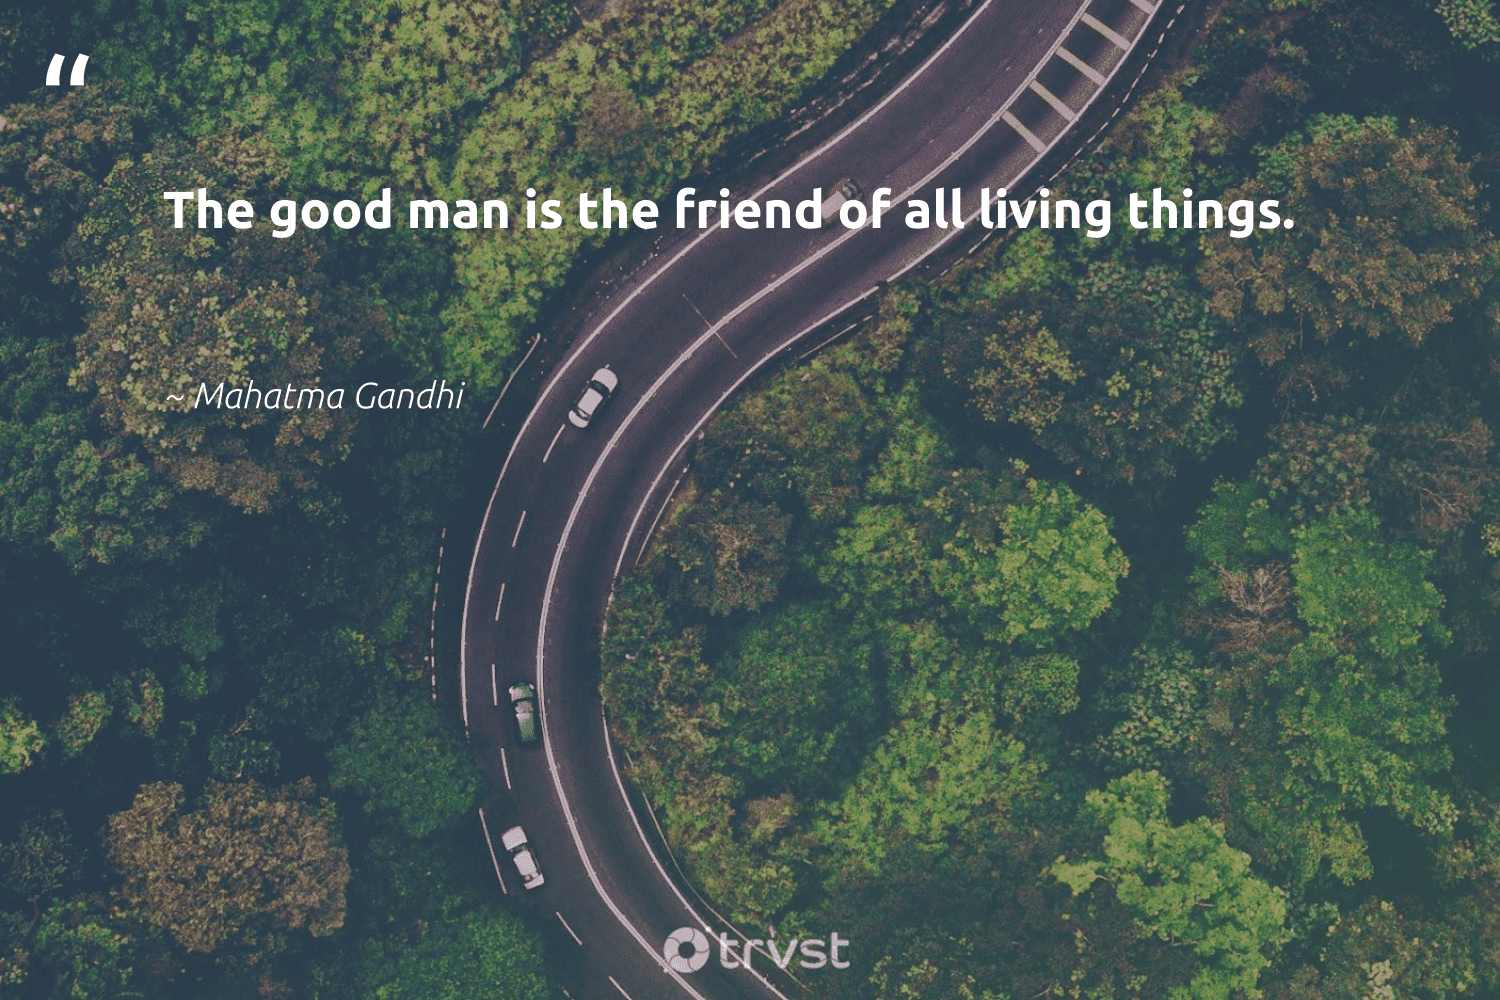 """""""The good man is the friend of all living things.""""  - Mahatma Gandhi #trvst #quotes #gogreen #takeaction #wildlifeplanet #beinspired #eco #impact #giveback #dogood #noplanetb #socialchange"""